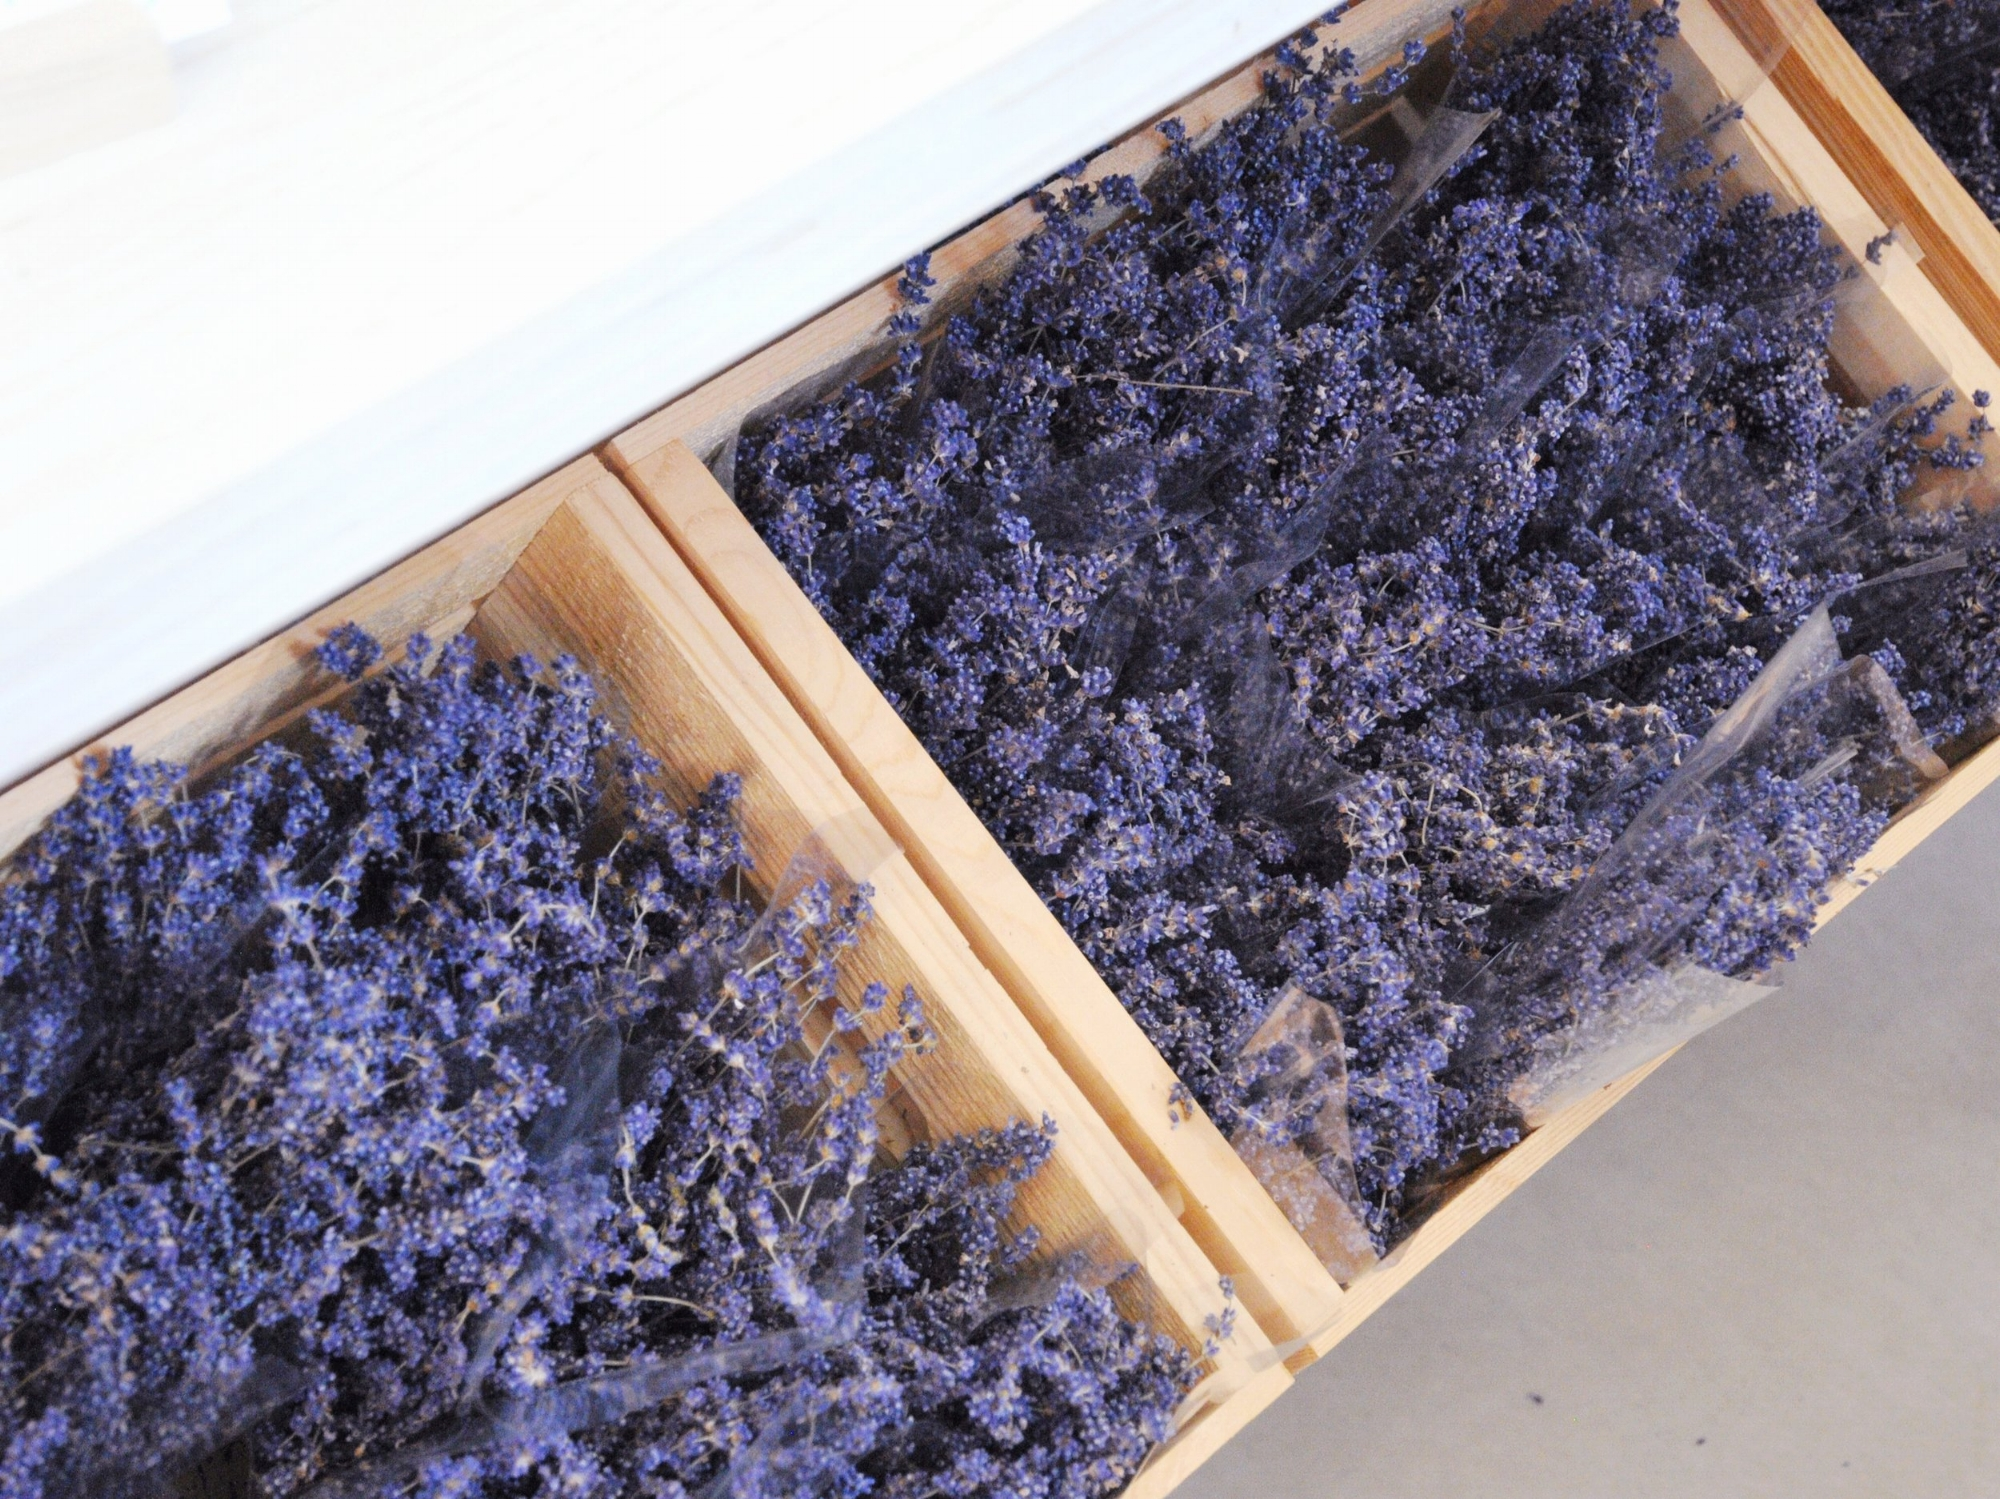 Code Lavender - Rapid holistic support. Well-being.